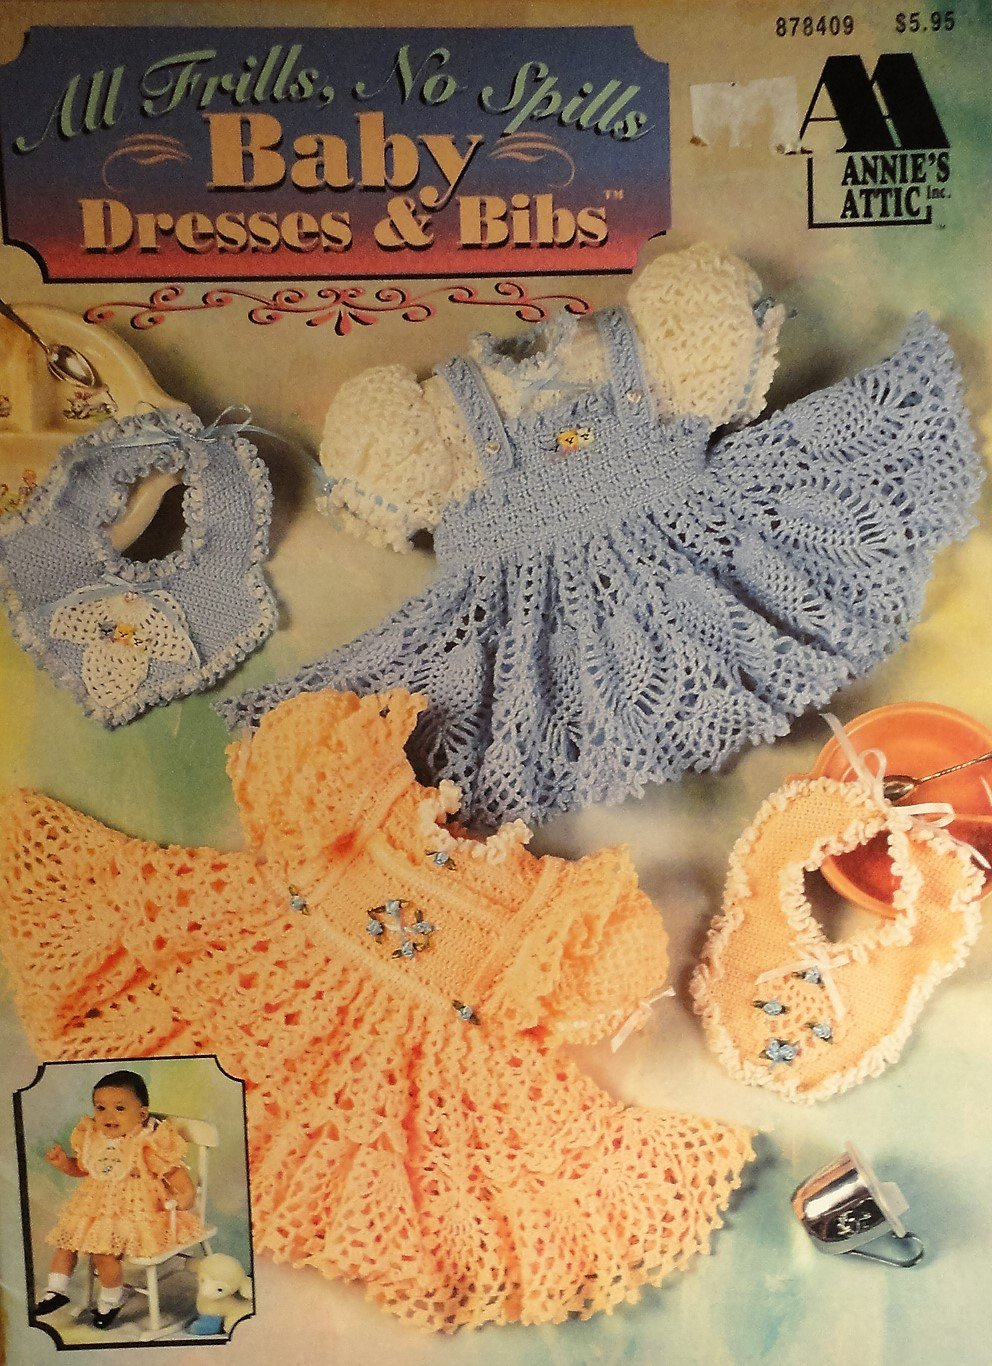 Annie's Attic 878409 Baby Dresses Bibs All Frills No Spills Crochet Pattern